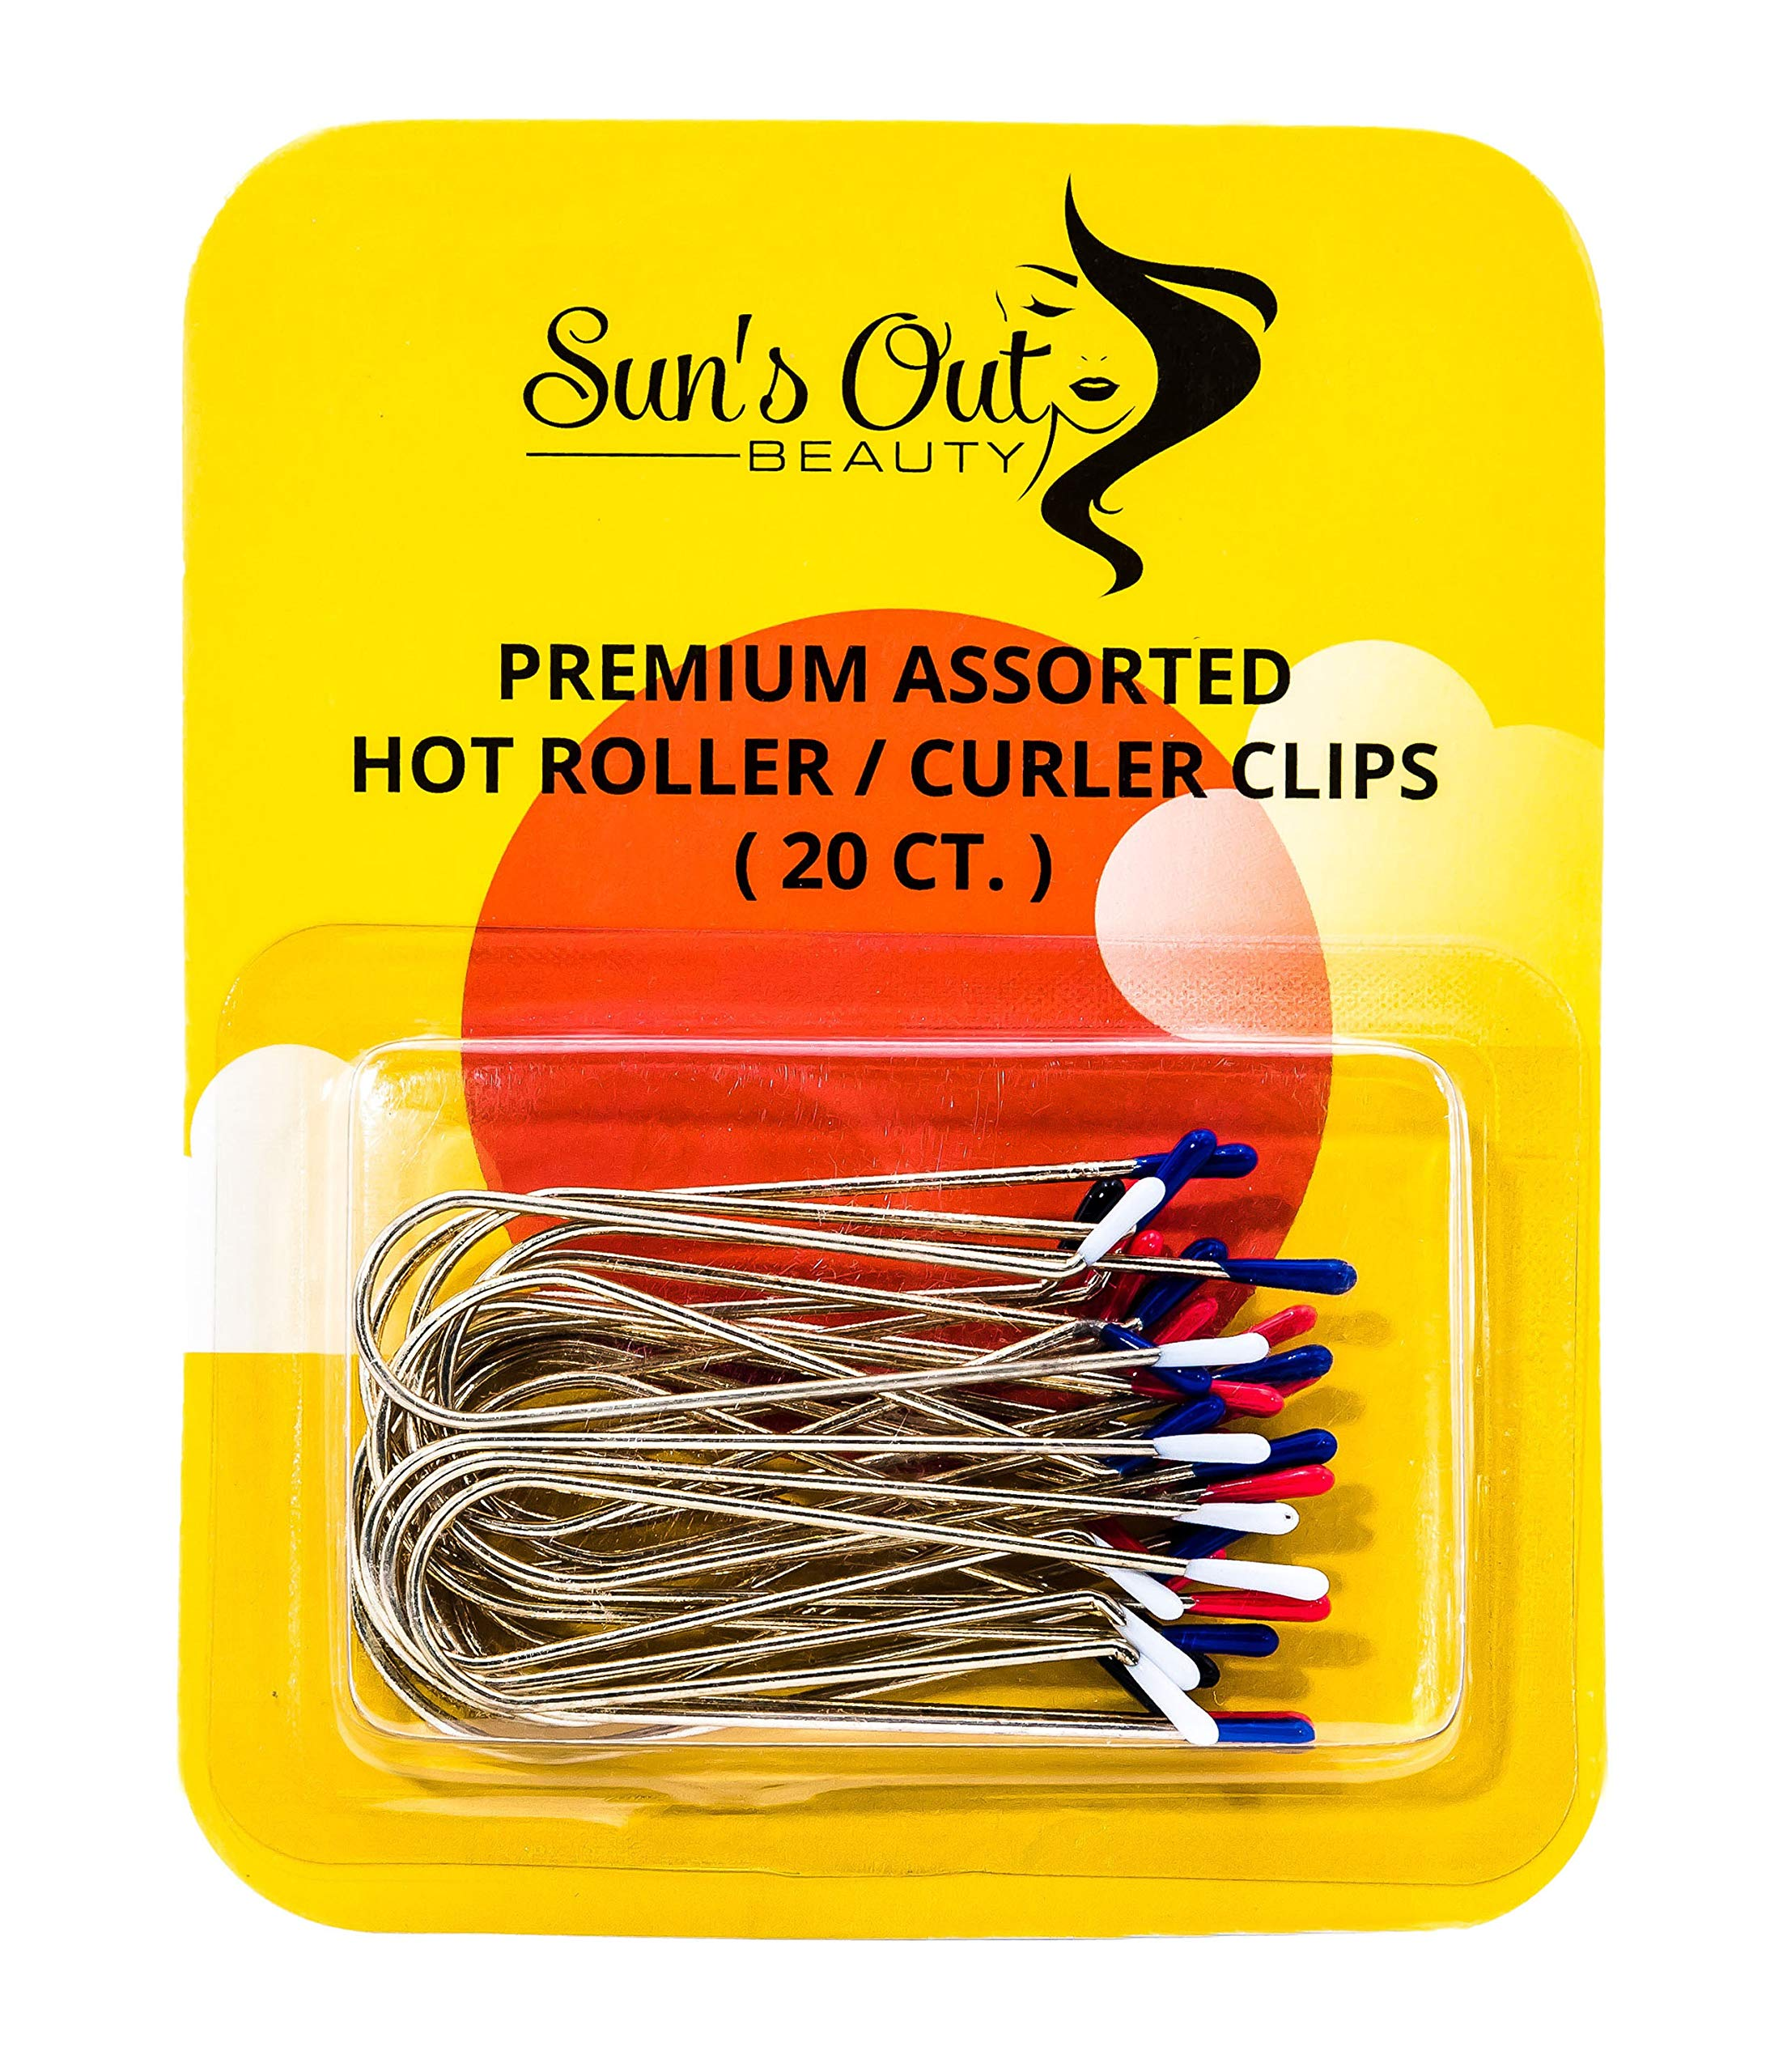 Sun's Out Beauty Premium Replacement Assorted Hot Roller Clips - Curler Clips - Regular Set (20 Count) by Sun's Out Beauty